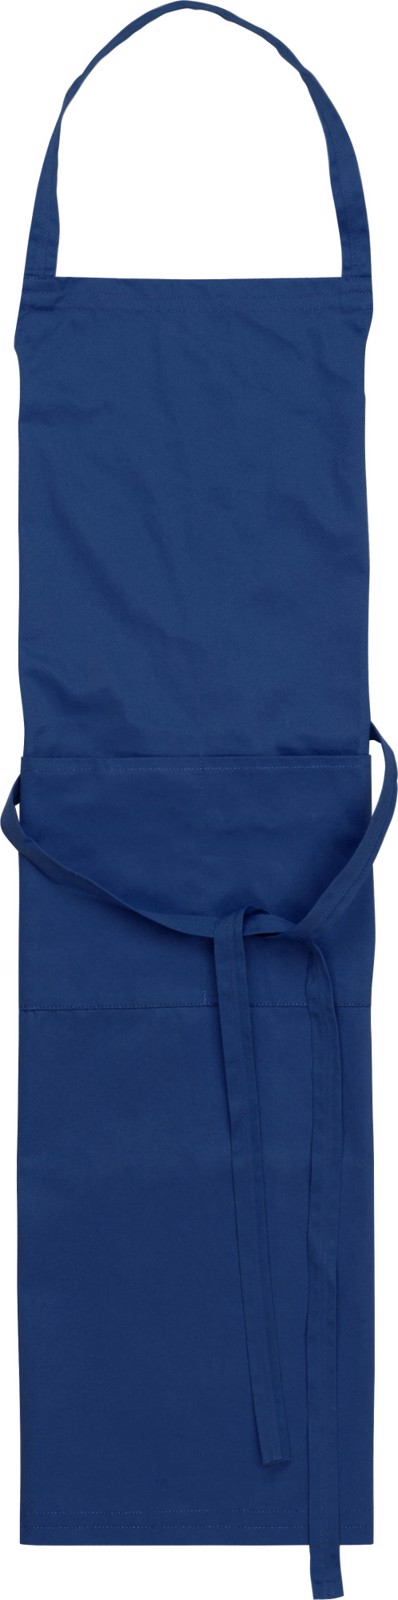 Cotton and polyester (240 gr/m²) apron - Blue